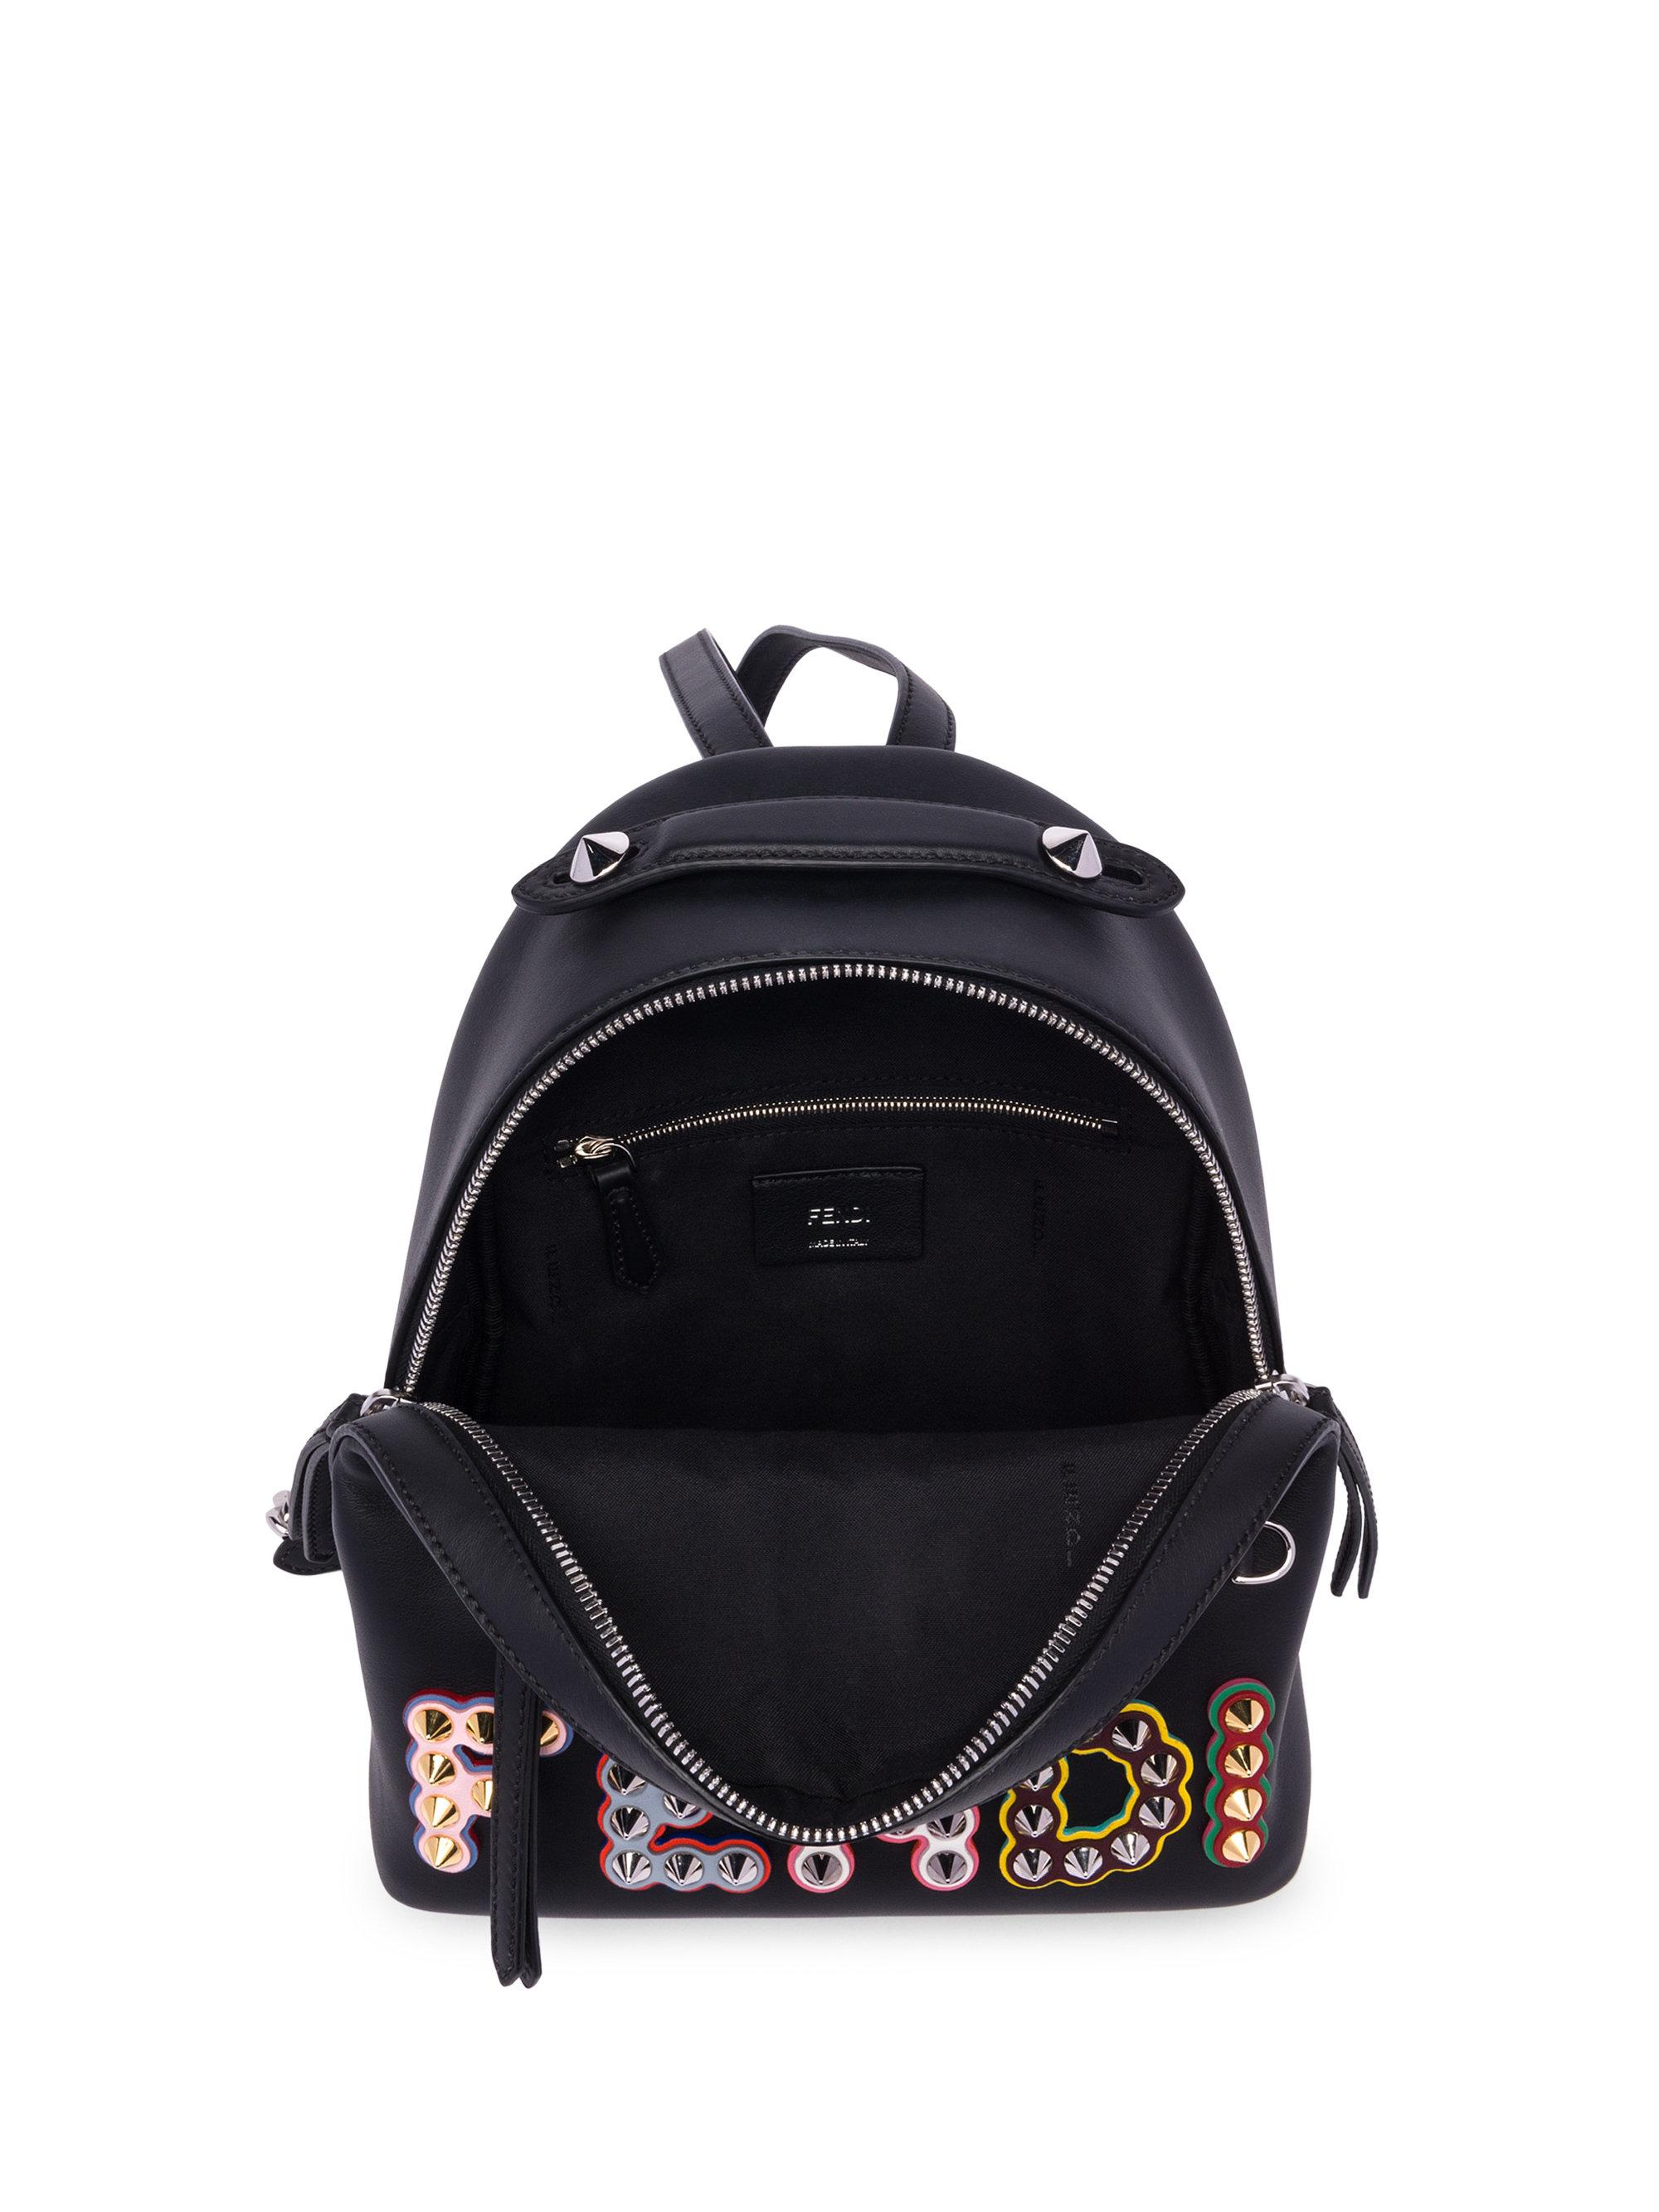 adf4e8db1f Lyst - Fendi Nero Studded Logo Leather Backpack in Black